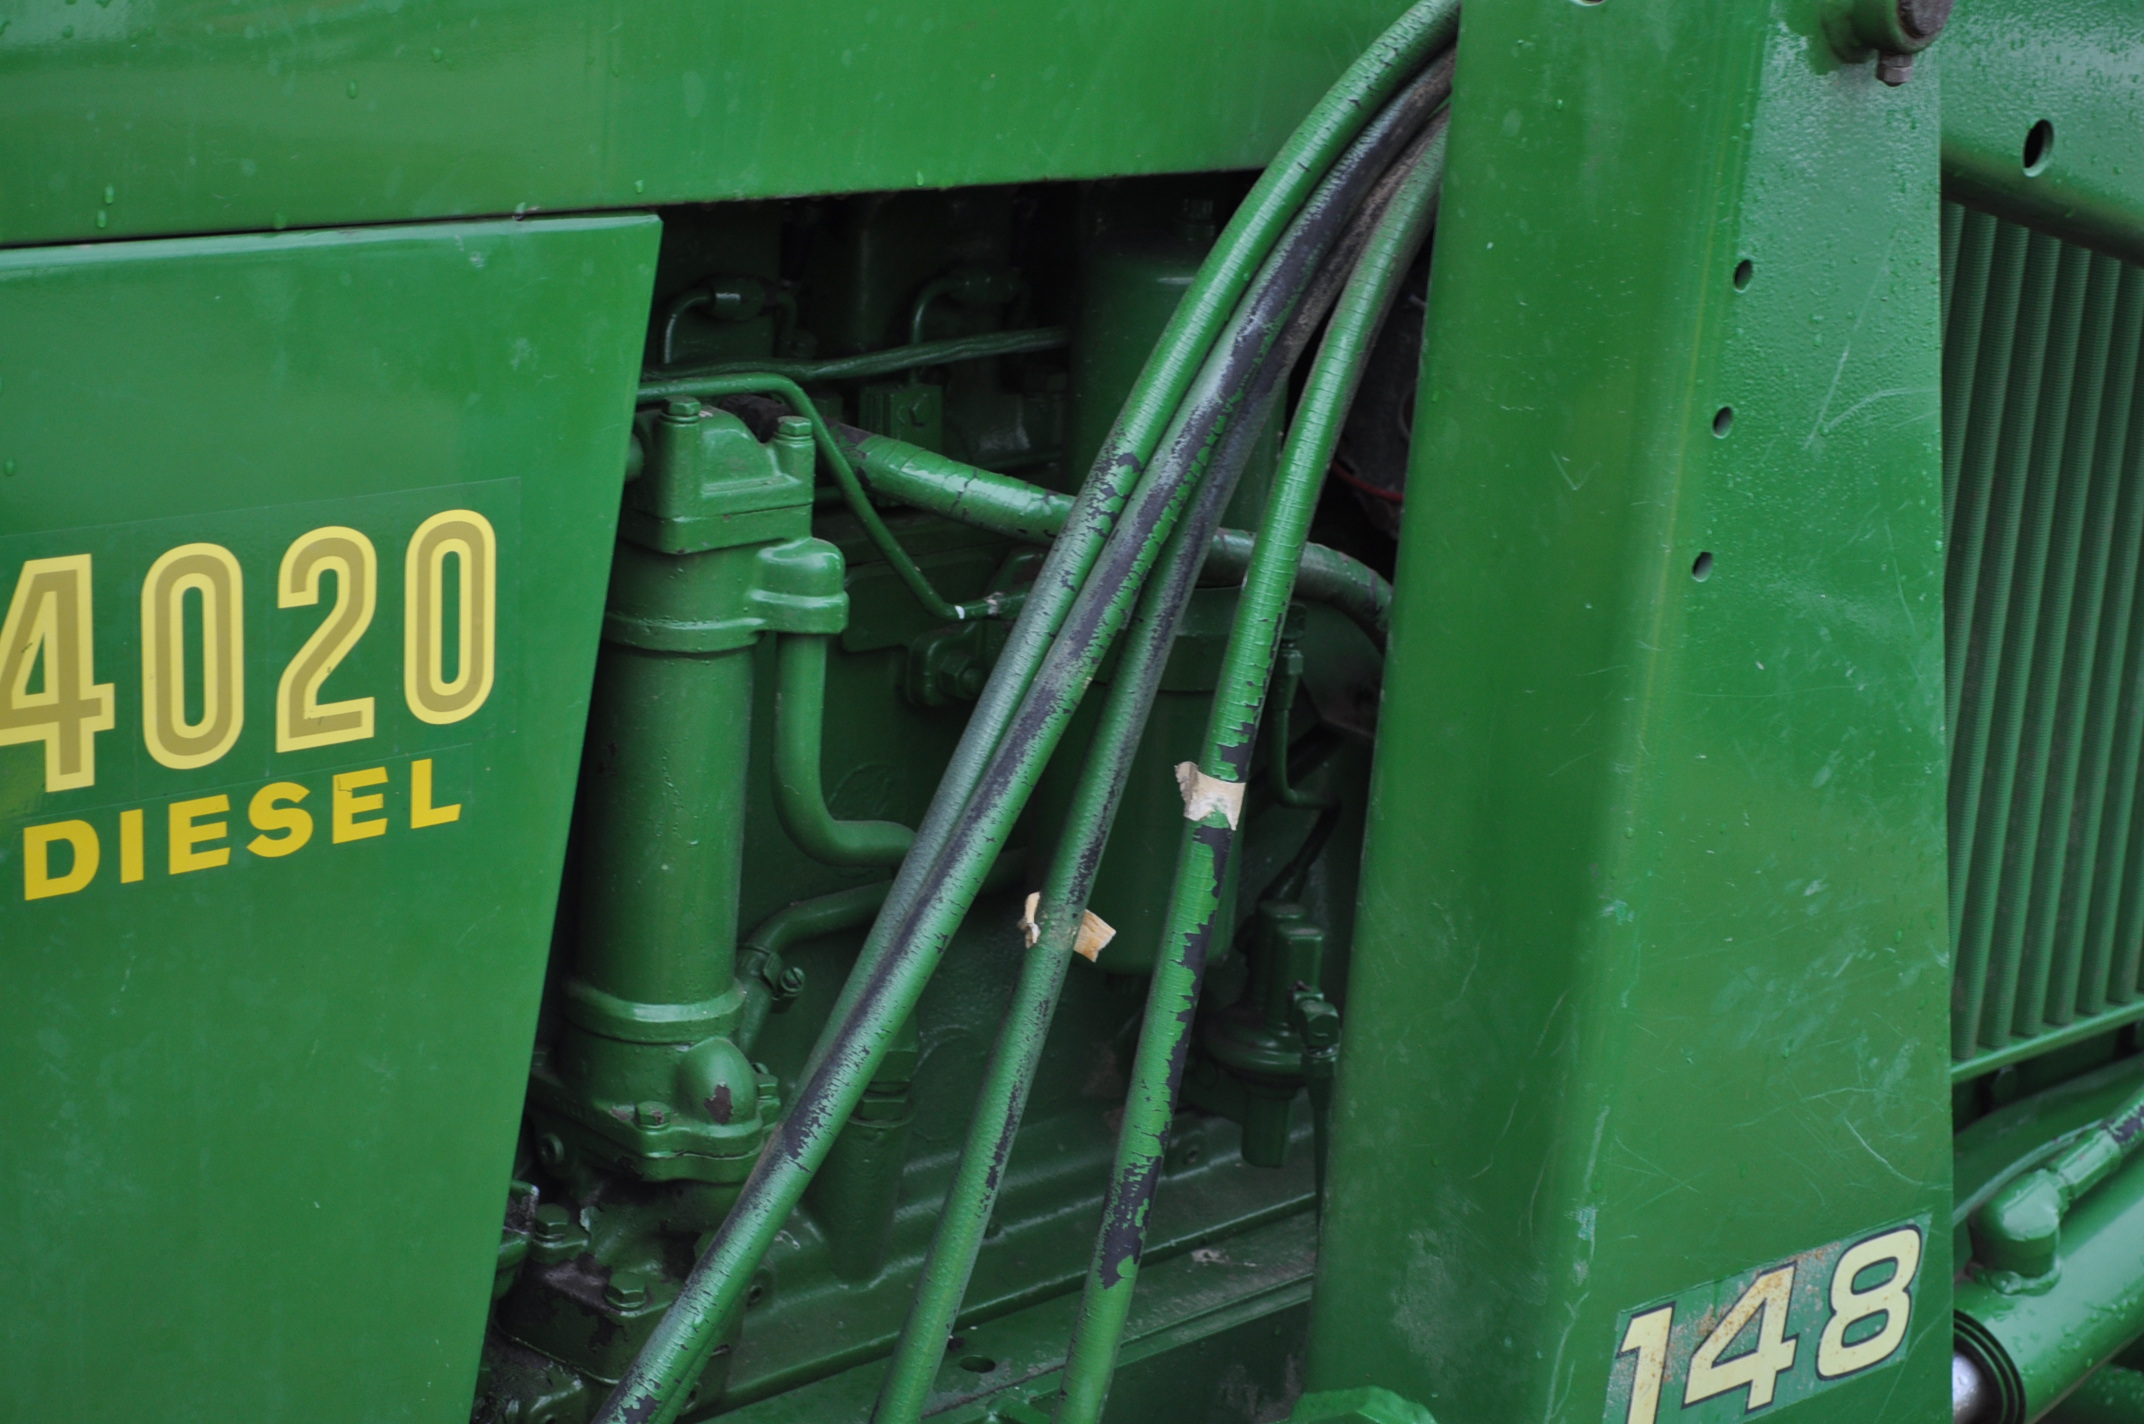 John Deere 4020 tractor, diesel, 18.4-34 tires w/ clamp on dual rims, 11L-15 front, ROPS w/ - Image 12 of 22